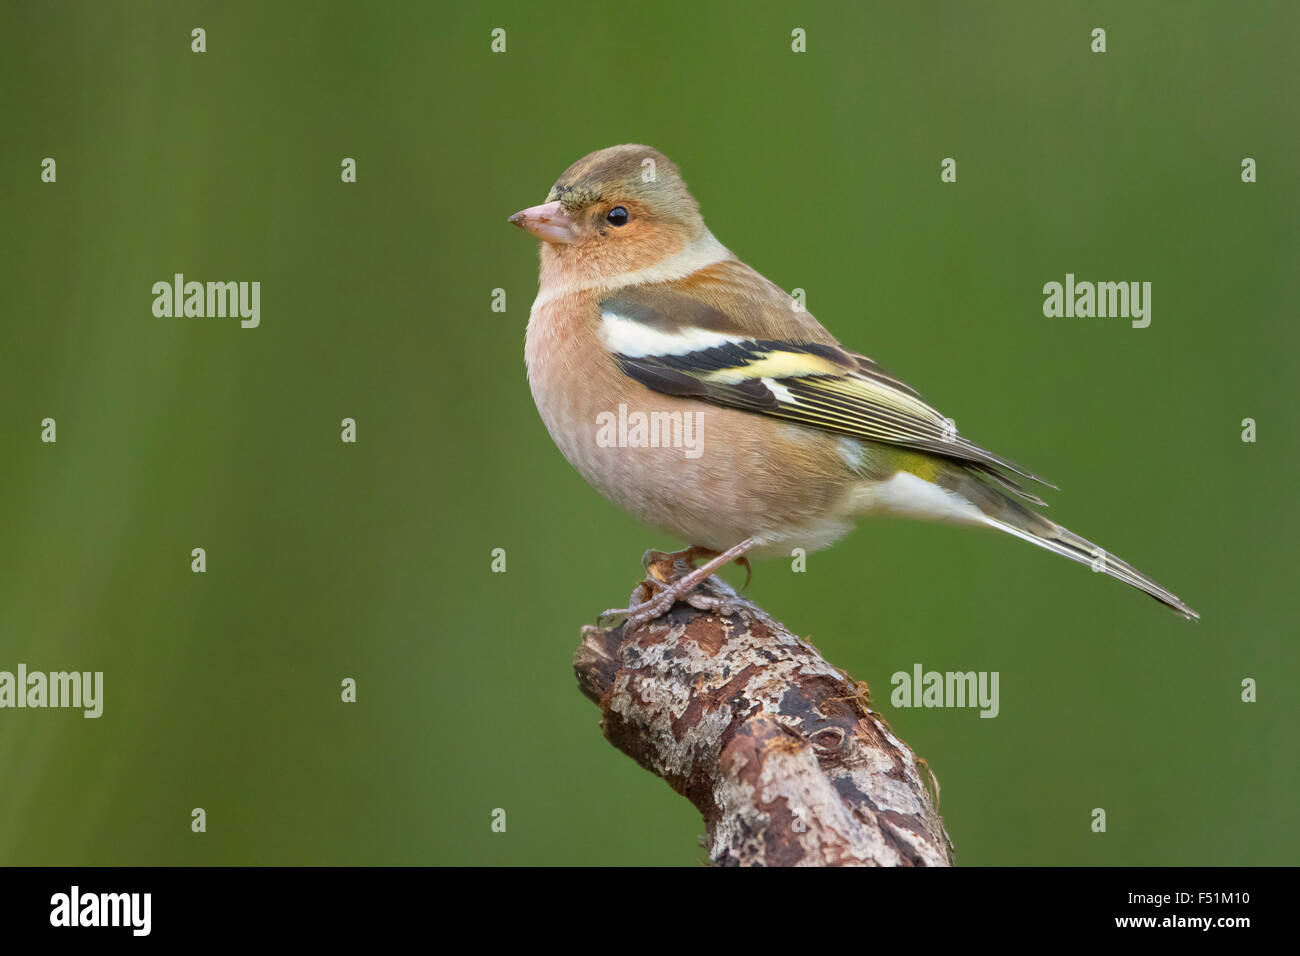 Common Chaffinch, Adult male standing on a branch, Campania, Italy (Fringilla coelebs) - Stock Image